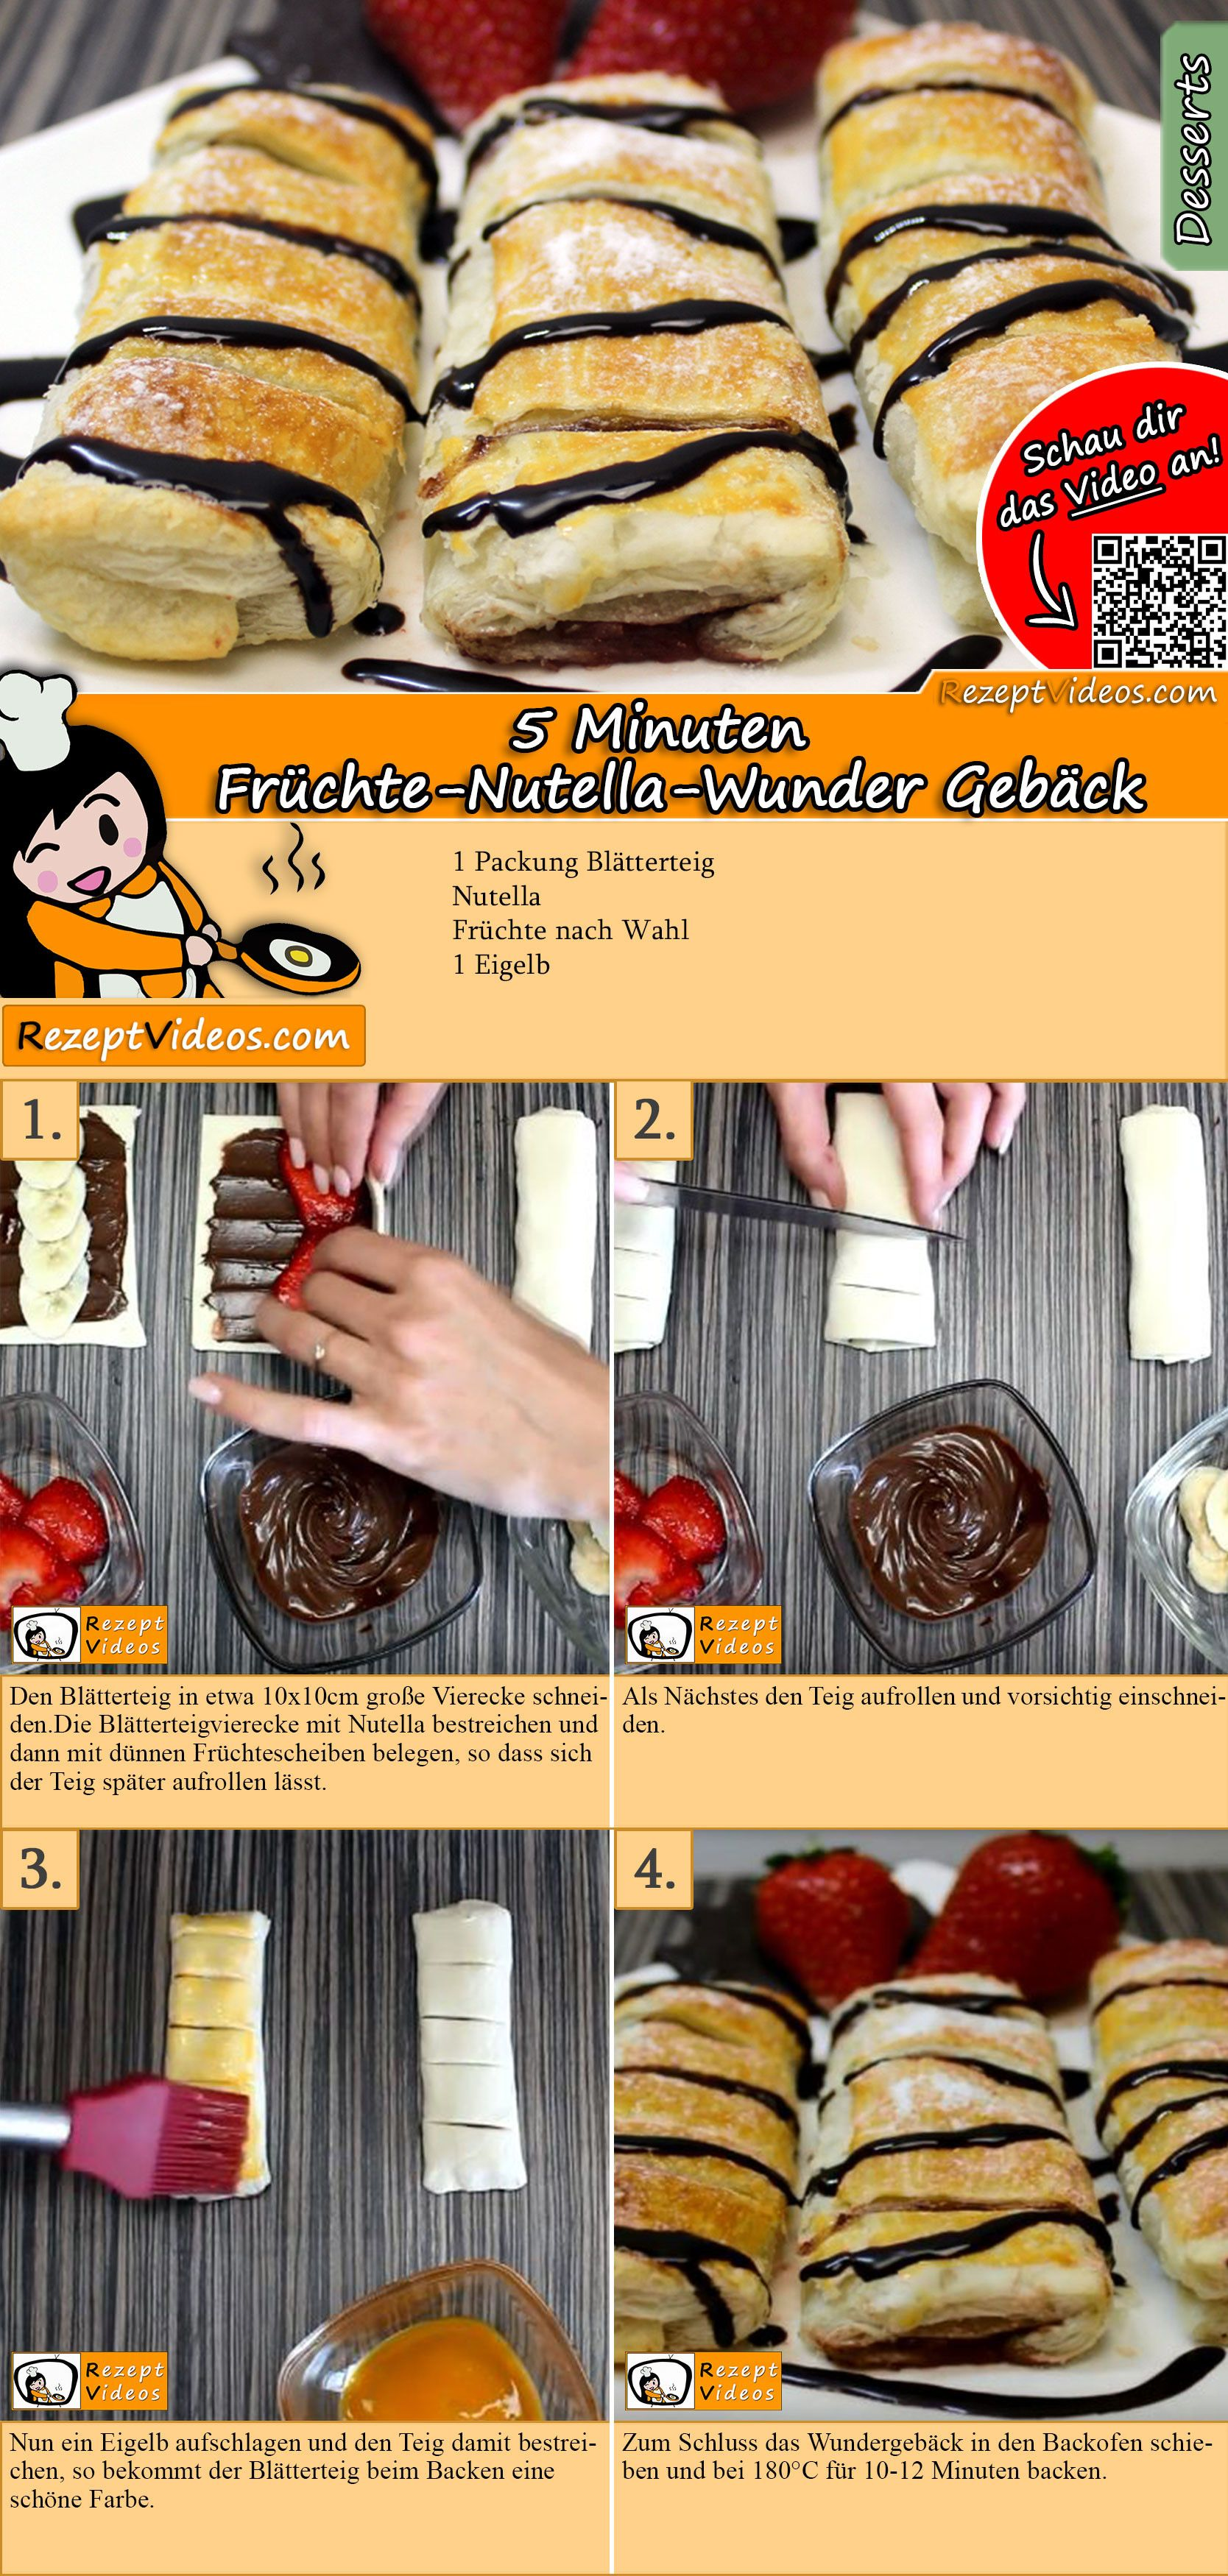 5 minute fruit and nutella pastry recipe with video